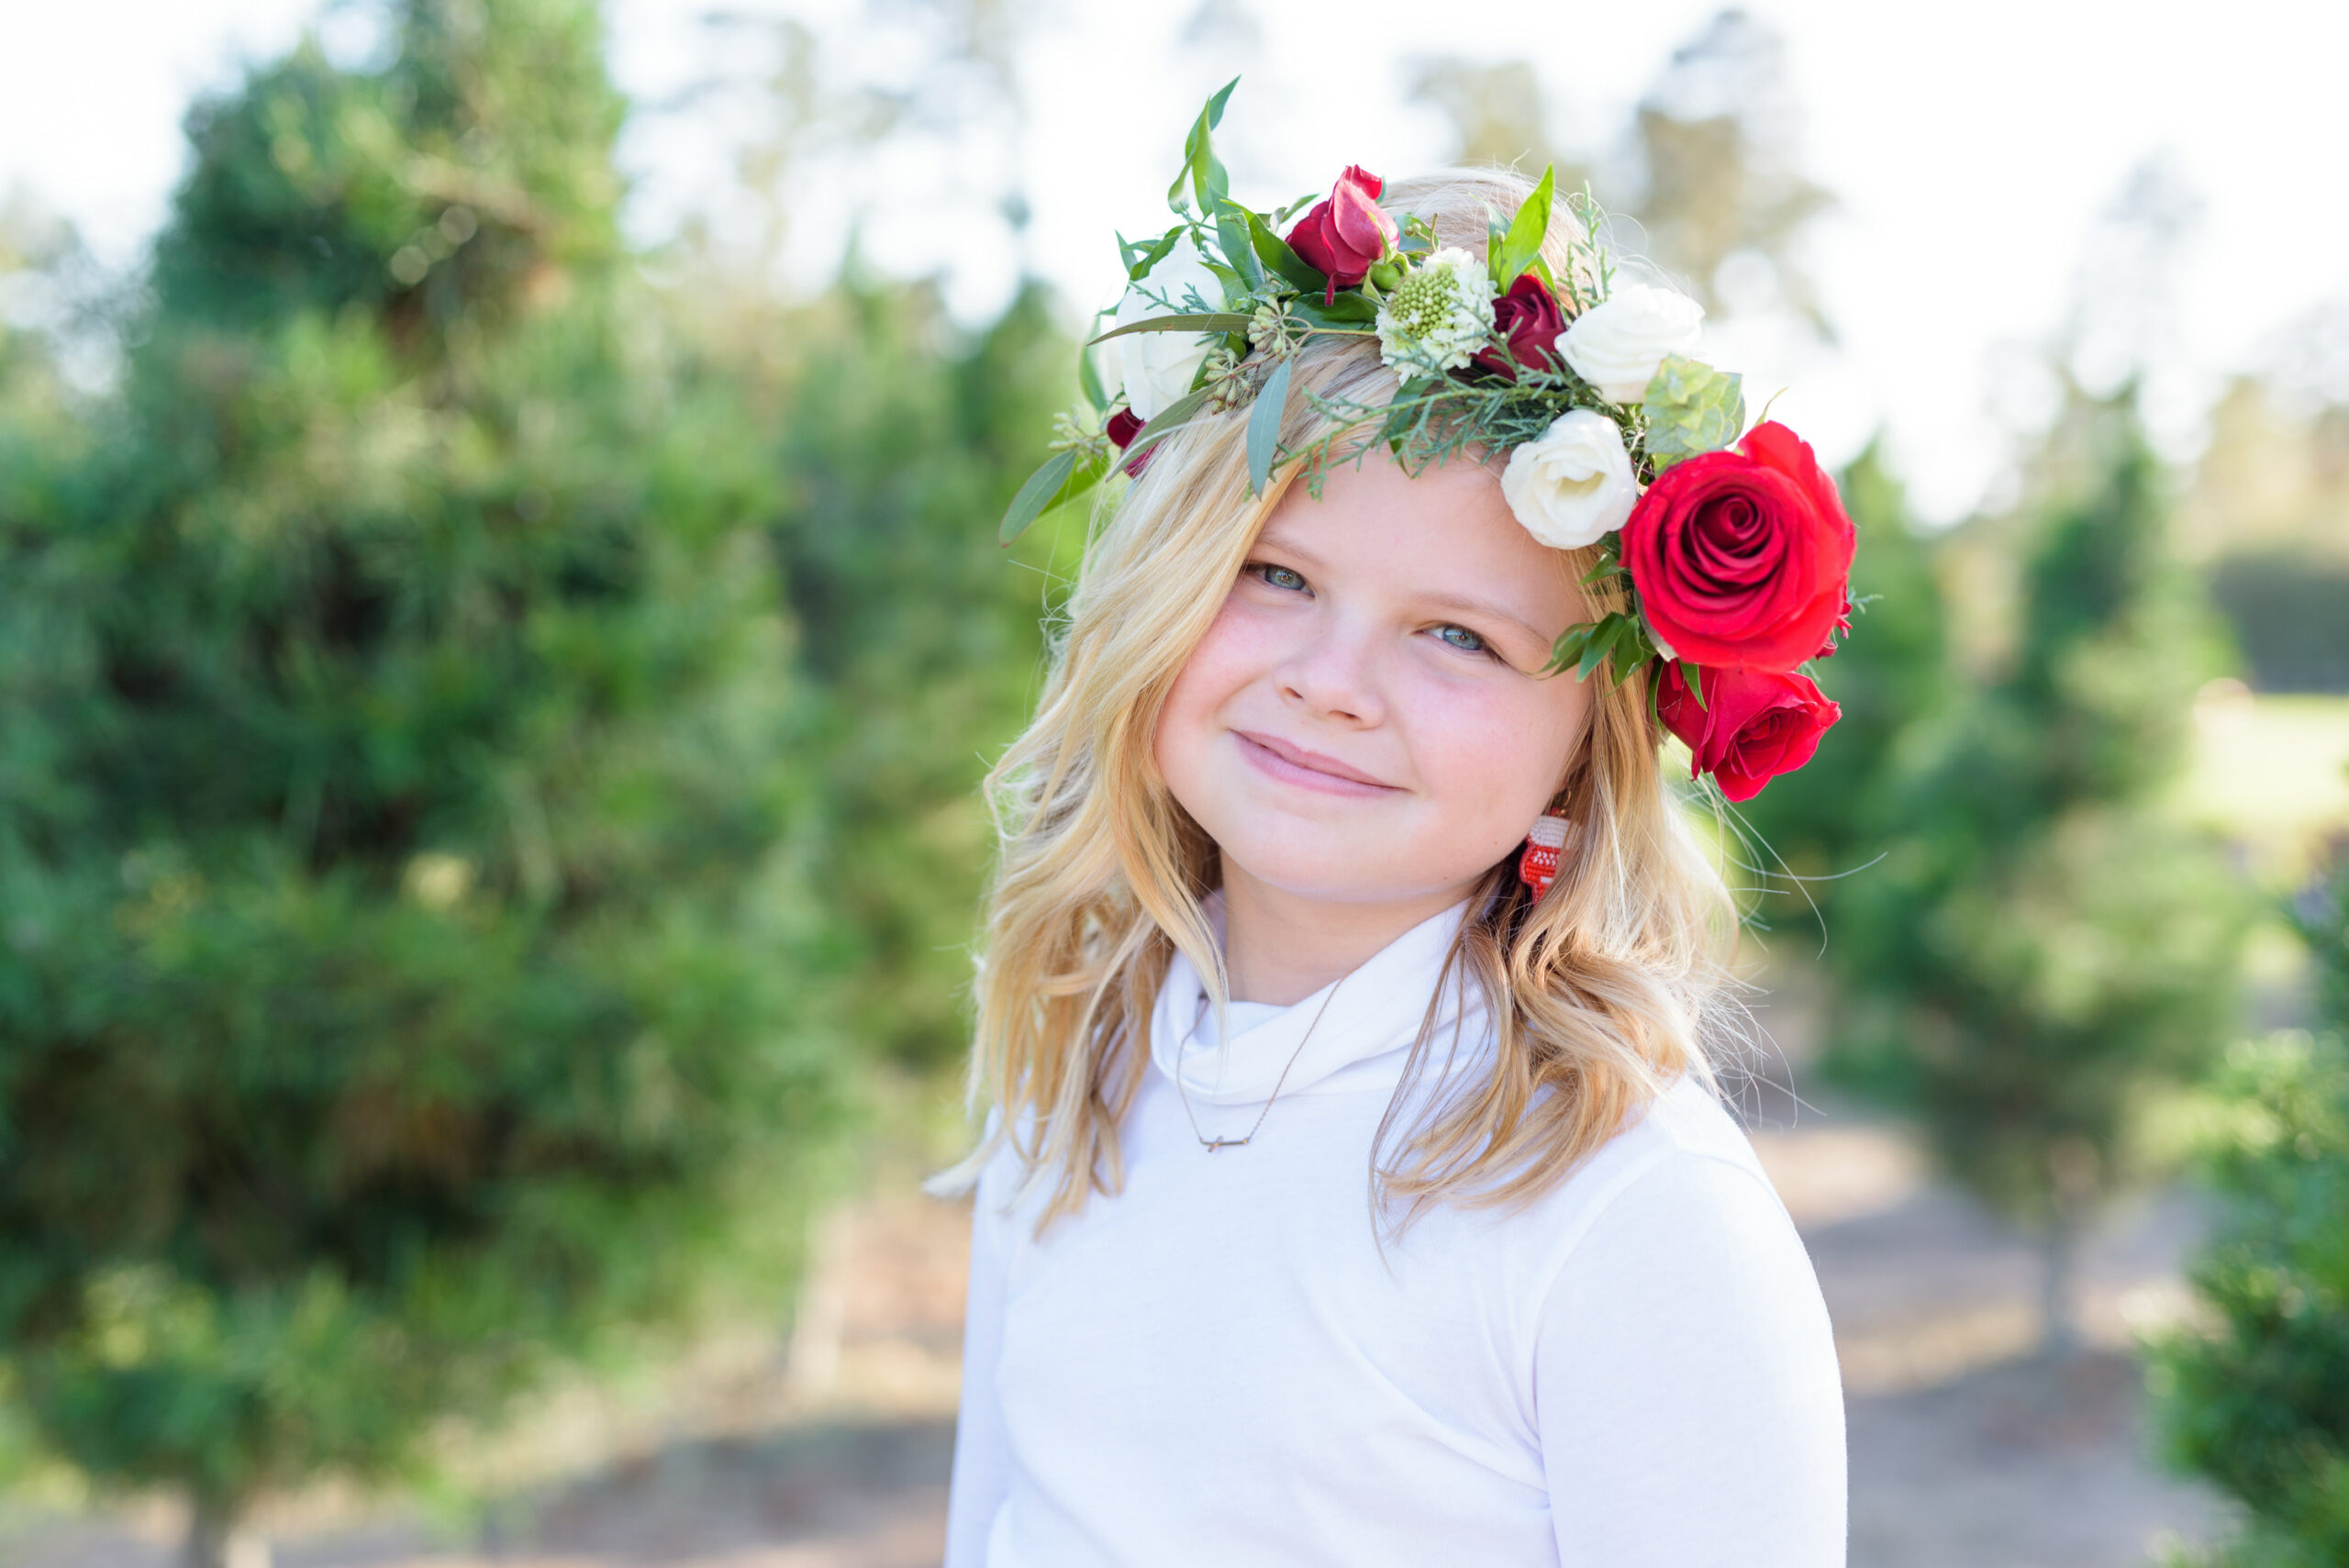 Christmas Tree Farm Photos by popular Houston lifestyle blog, Fancy Ashley: image of a girl standing in a row of pine trees and wearing a white long sleeve turtleneck, plaid tier ruffle skirt, flower crown